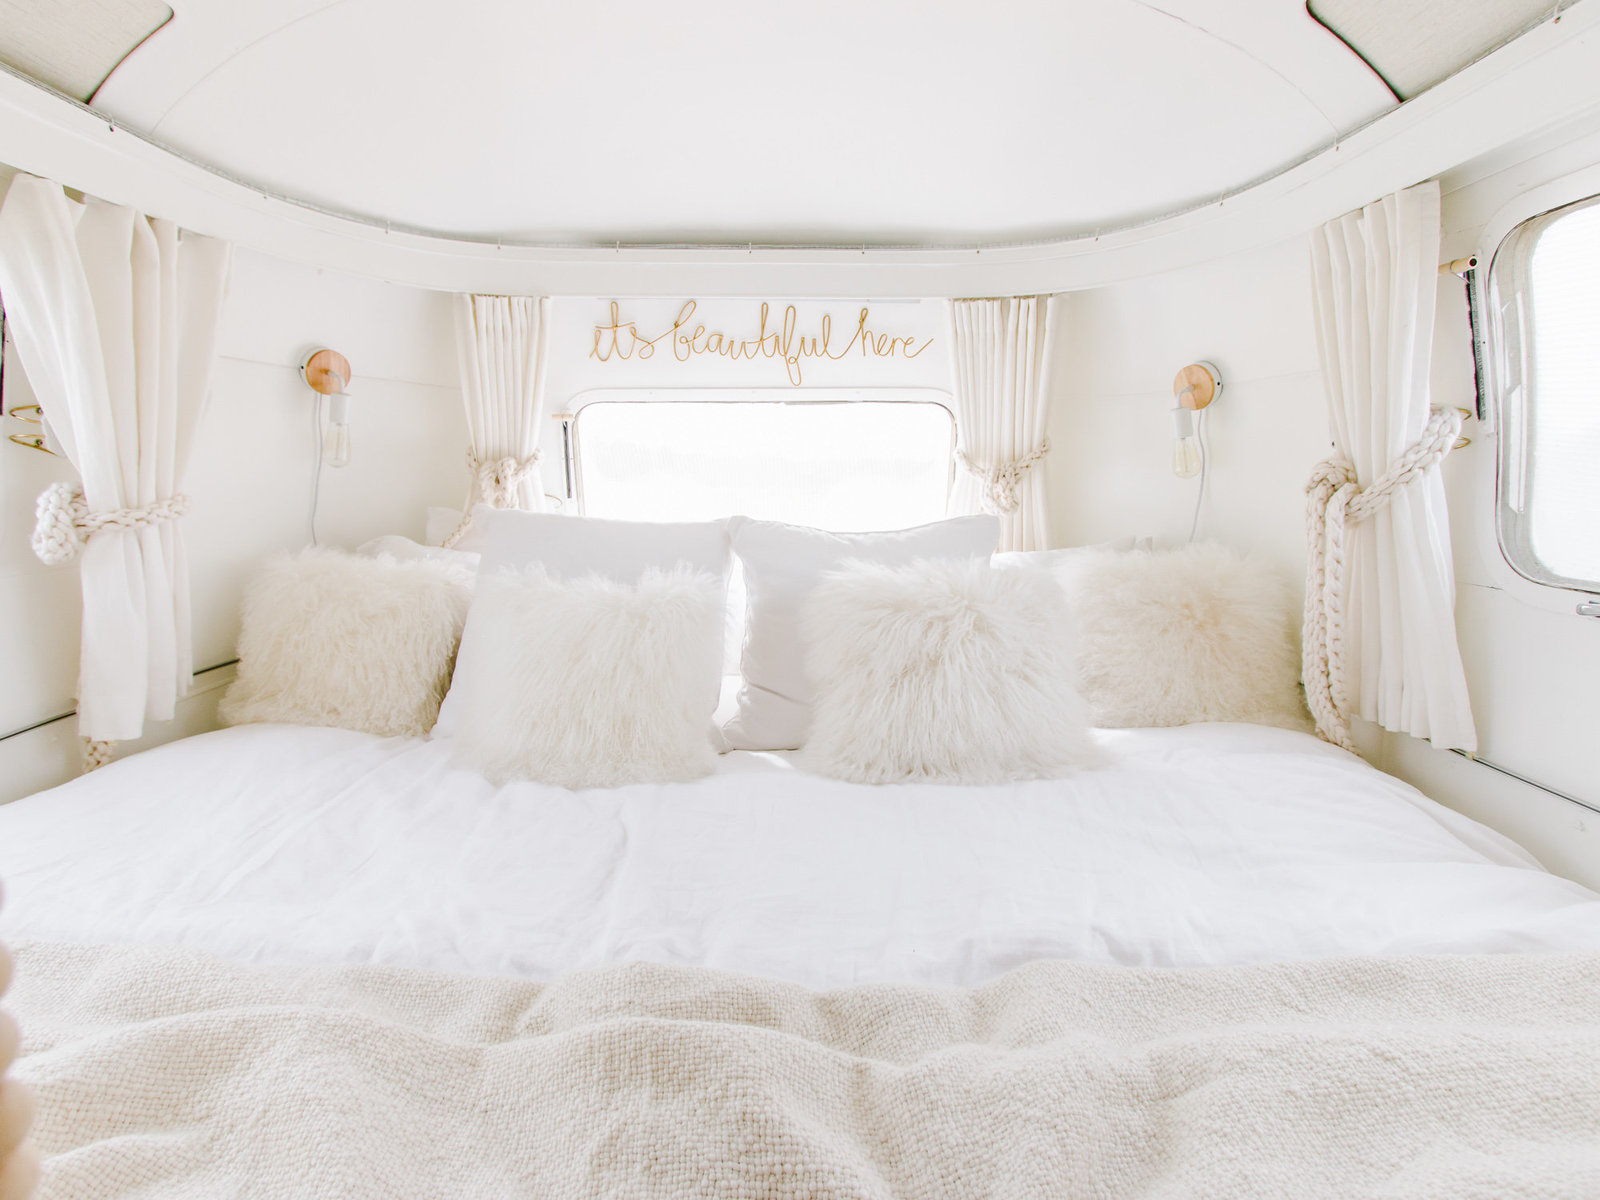 Meet our newly renovated 1976 vintage airstream | Lived and travelled in it for 7 months | read more on www.lynneknowlton.com